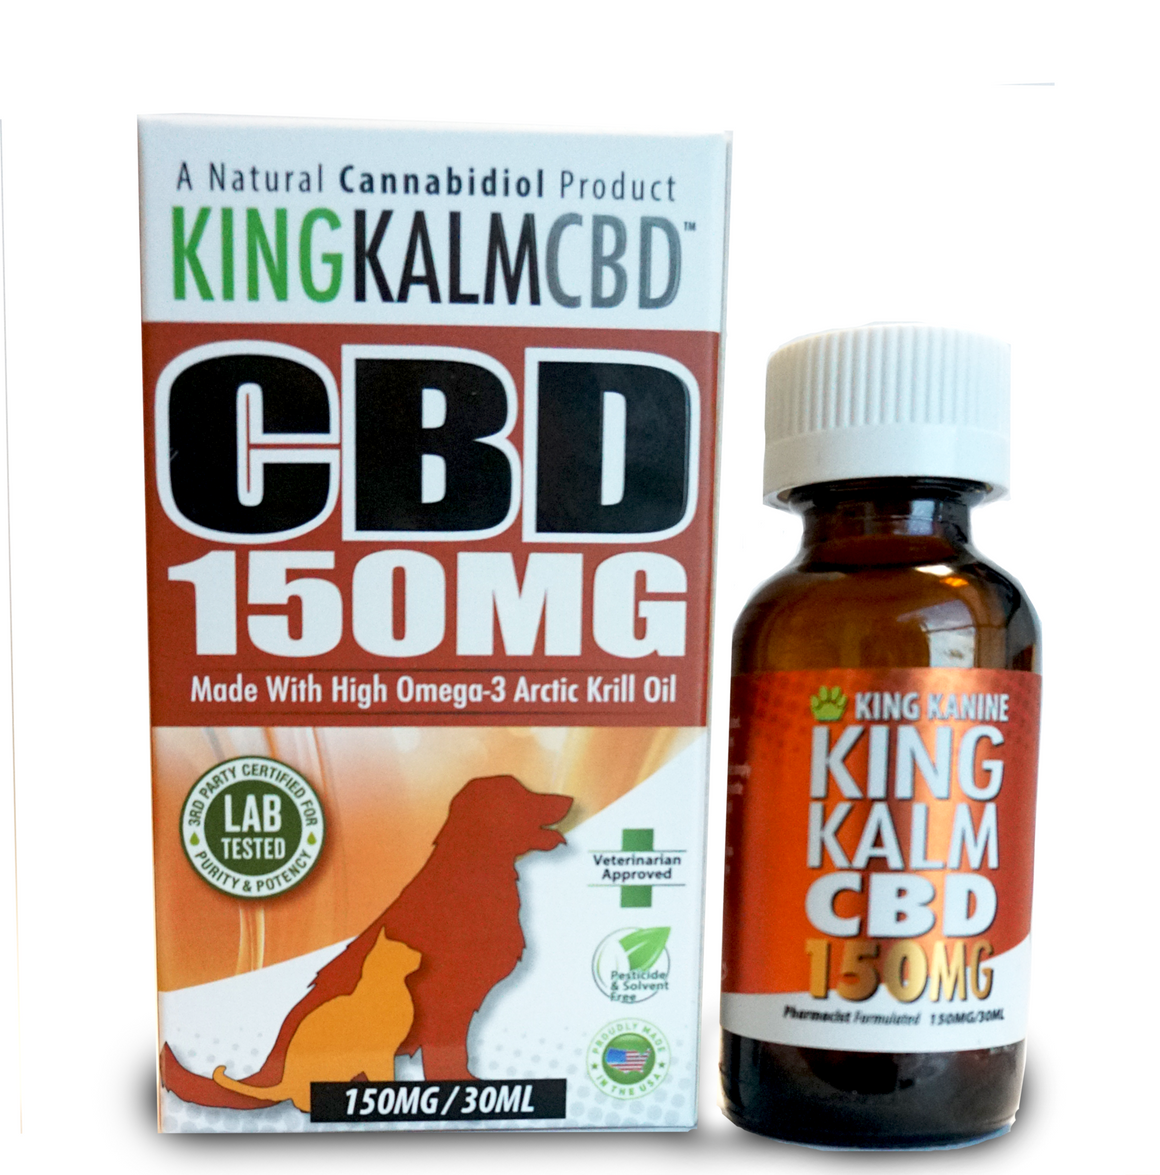 150 MG CBD with Krill Oil by King Kanine